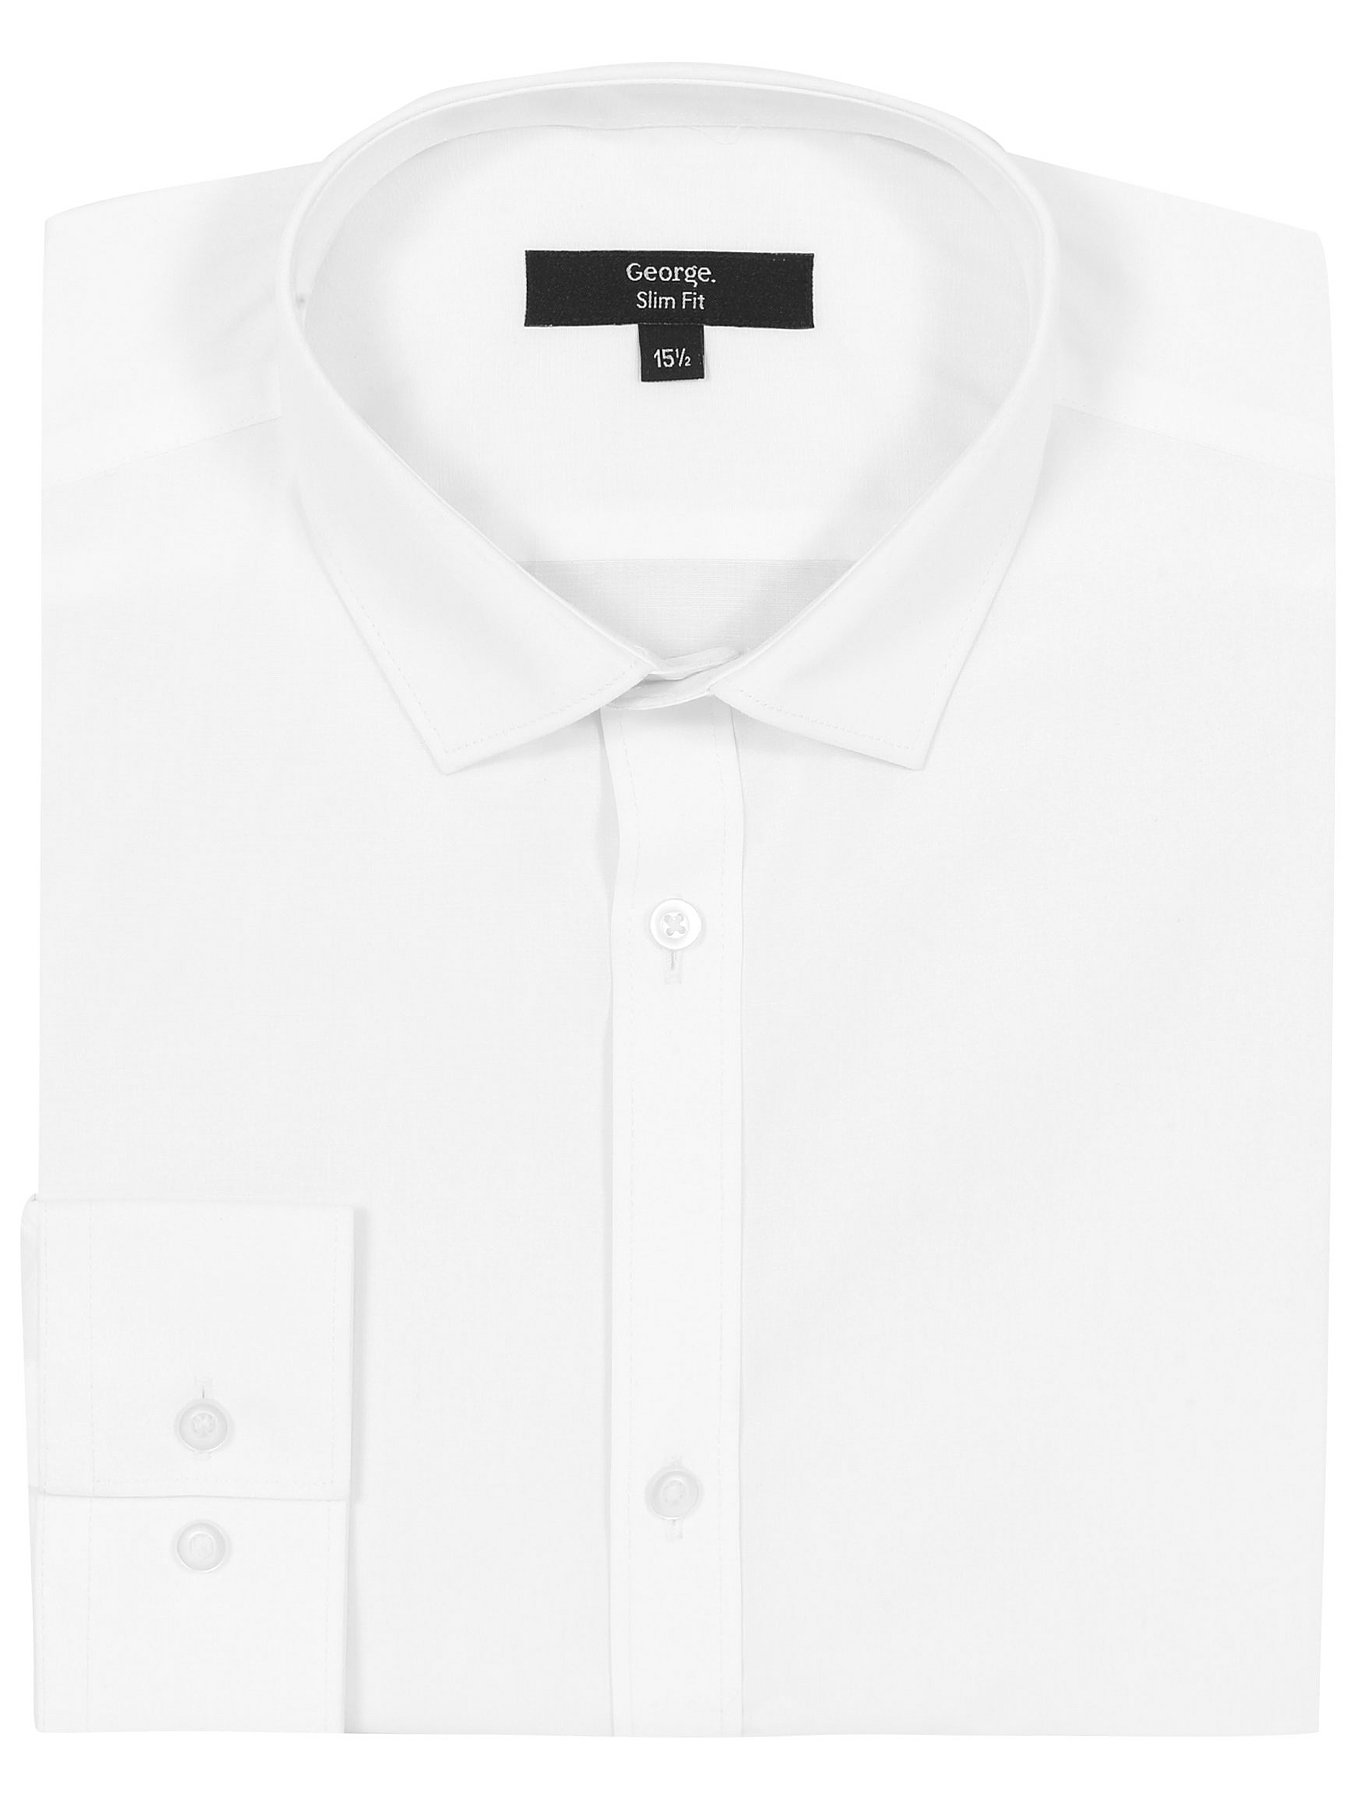 Tailor & Cutter Slim Fit Long Sleeve Shirt | Men | George at ASDA